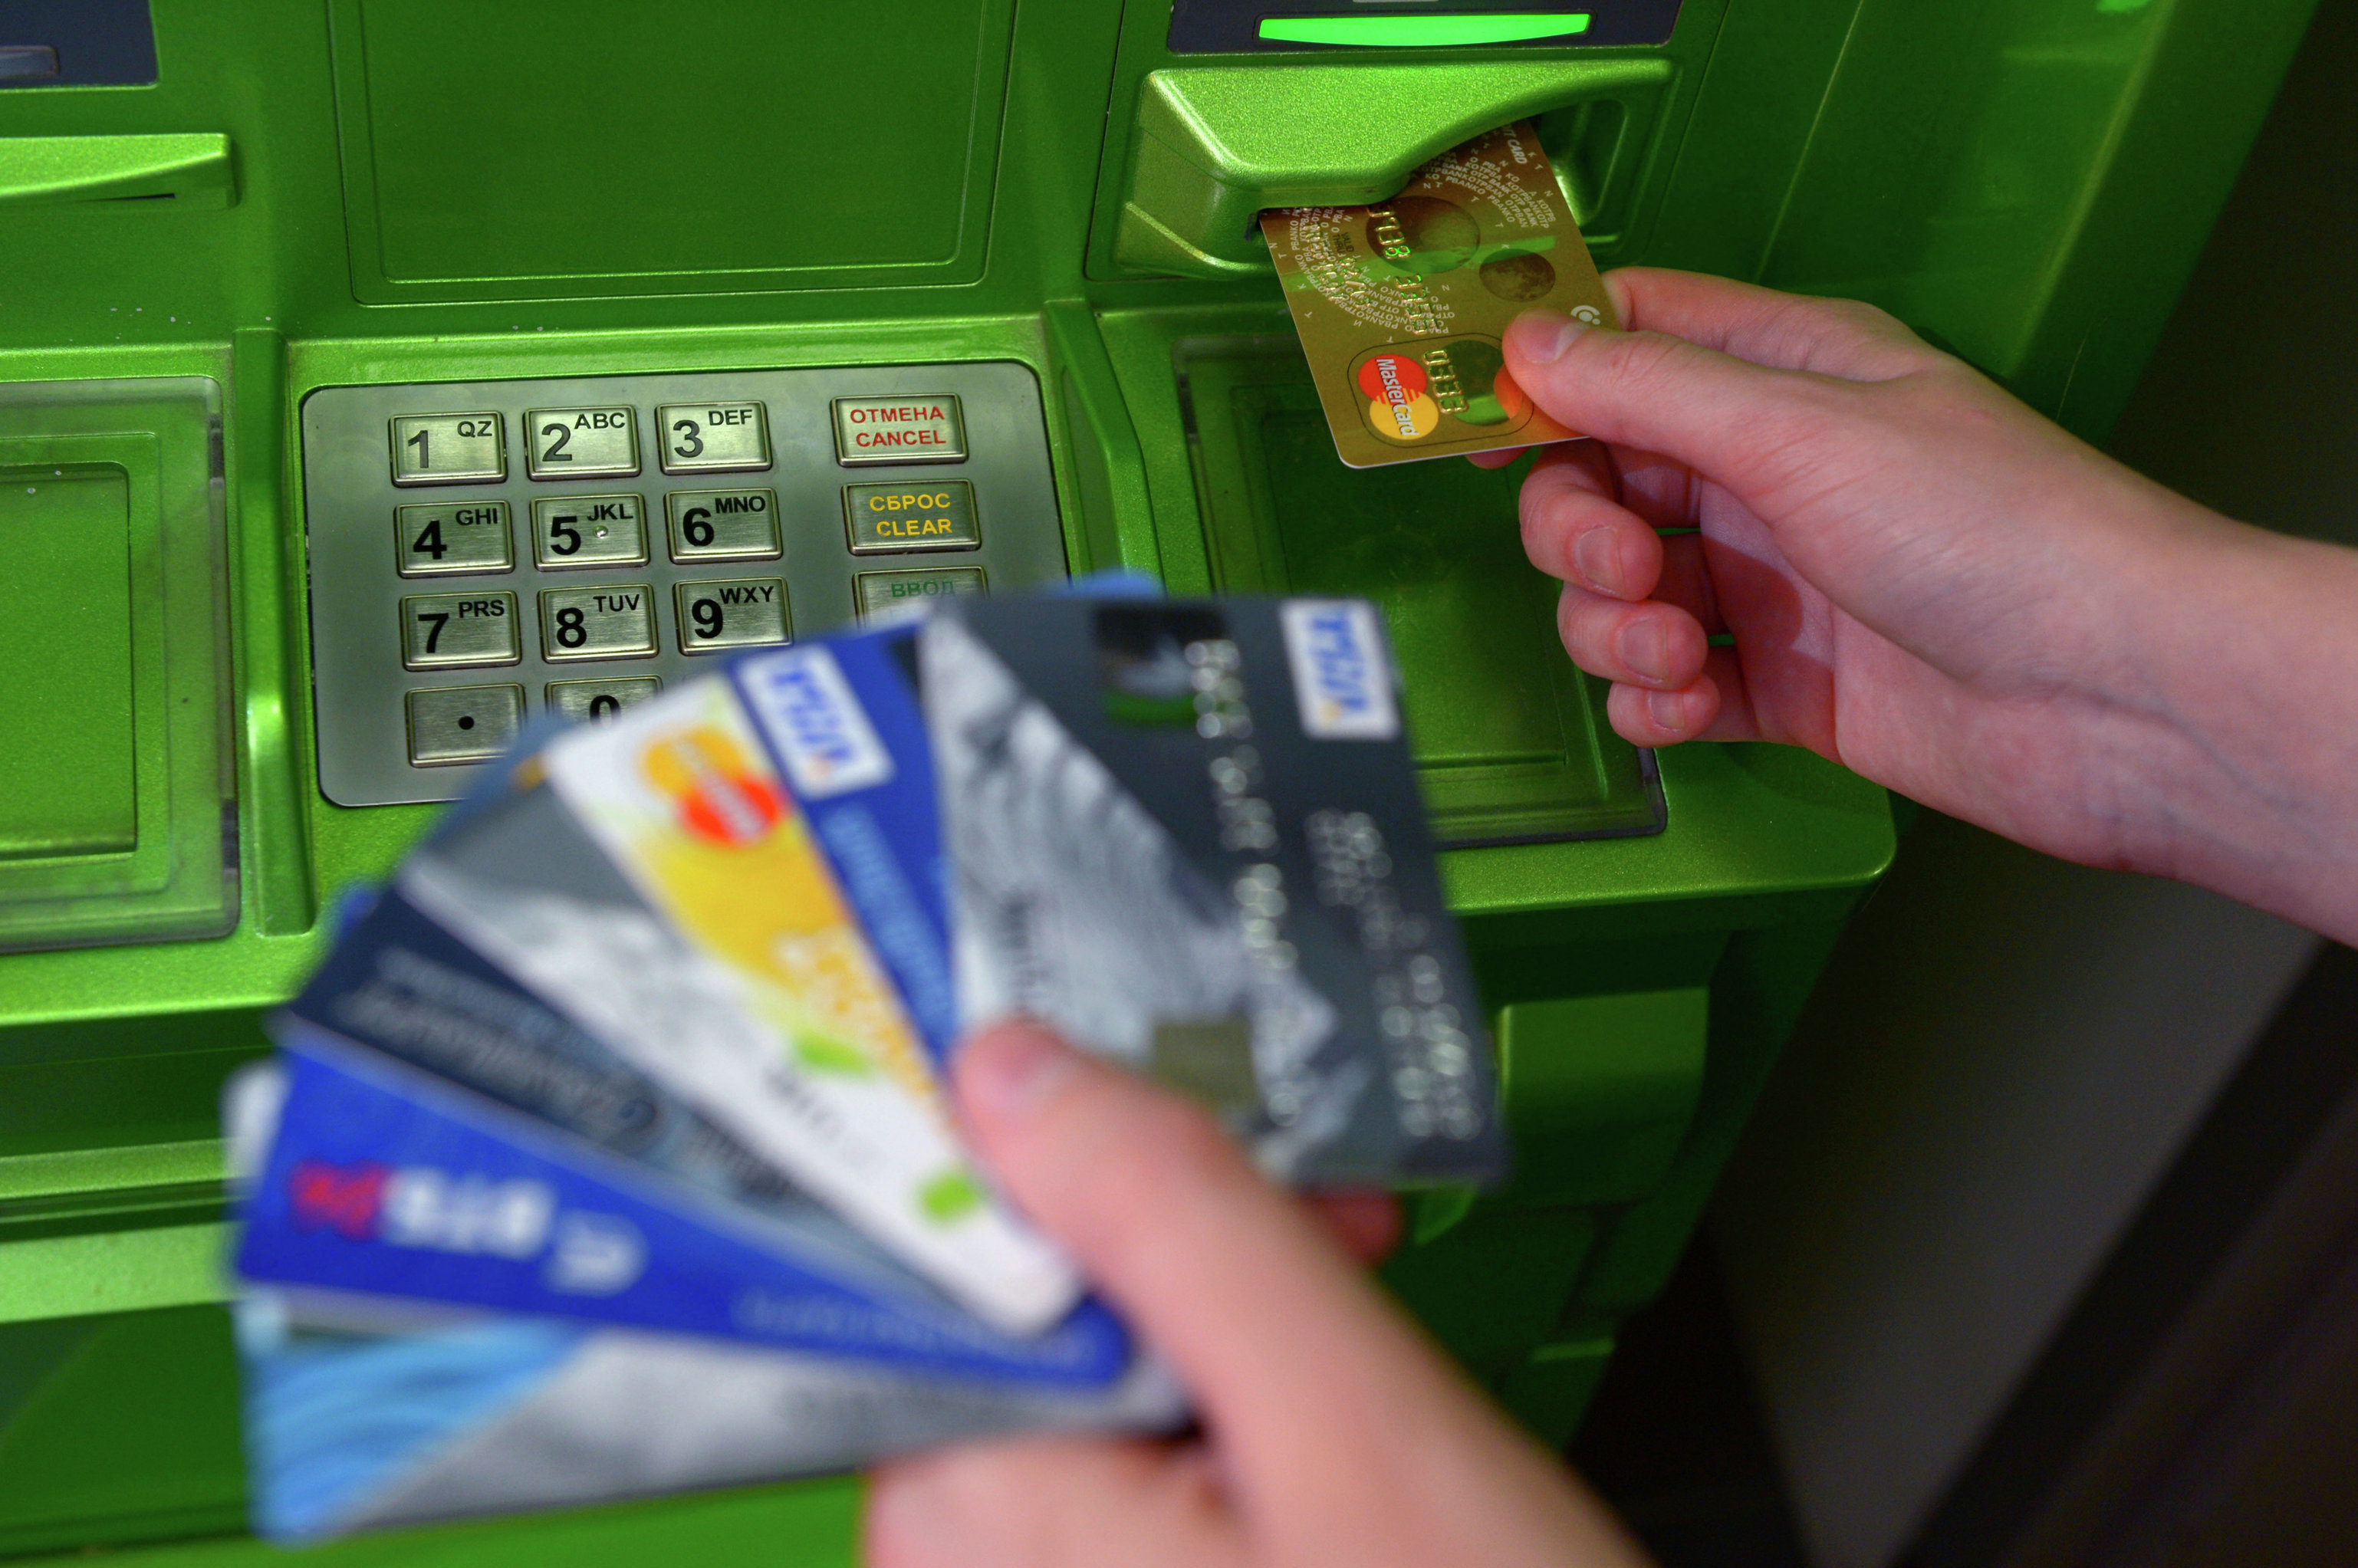 Bank cards of international payment systems VISA and MasterCard